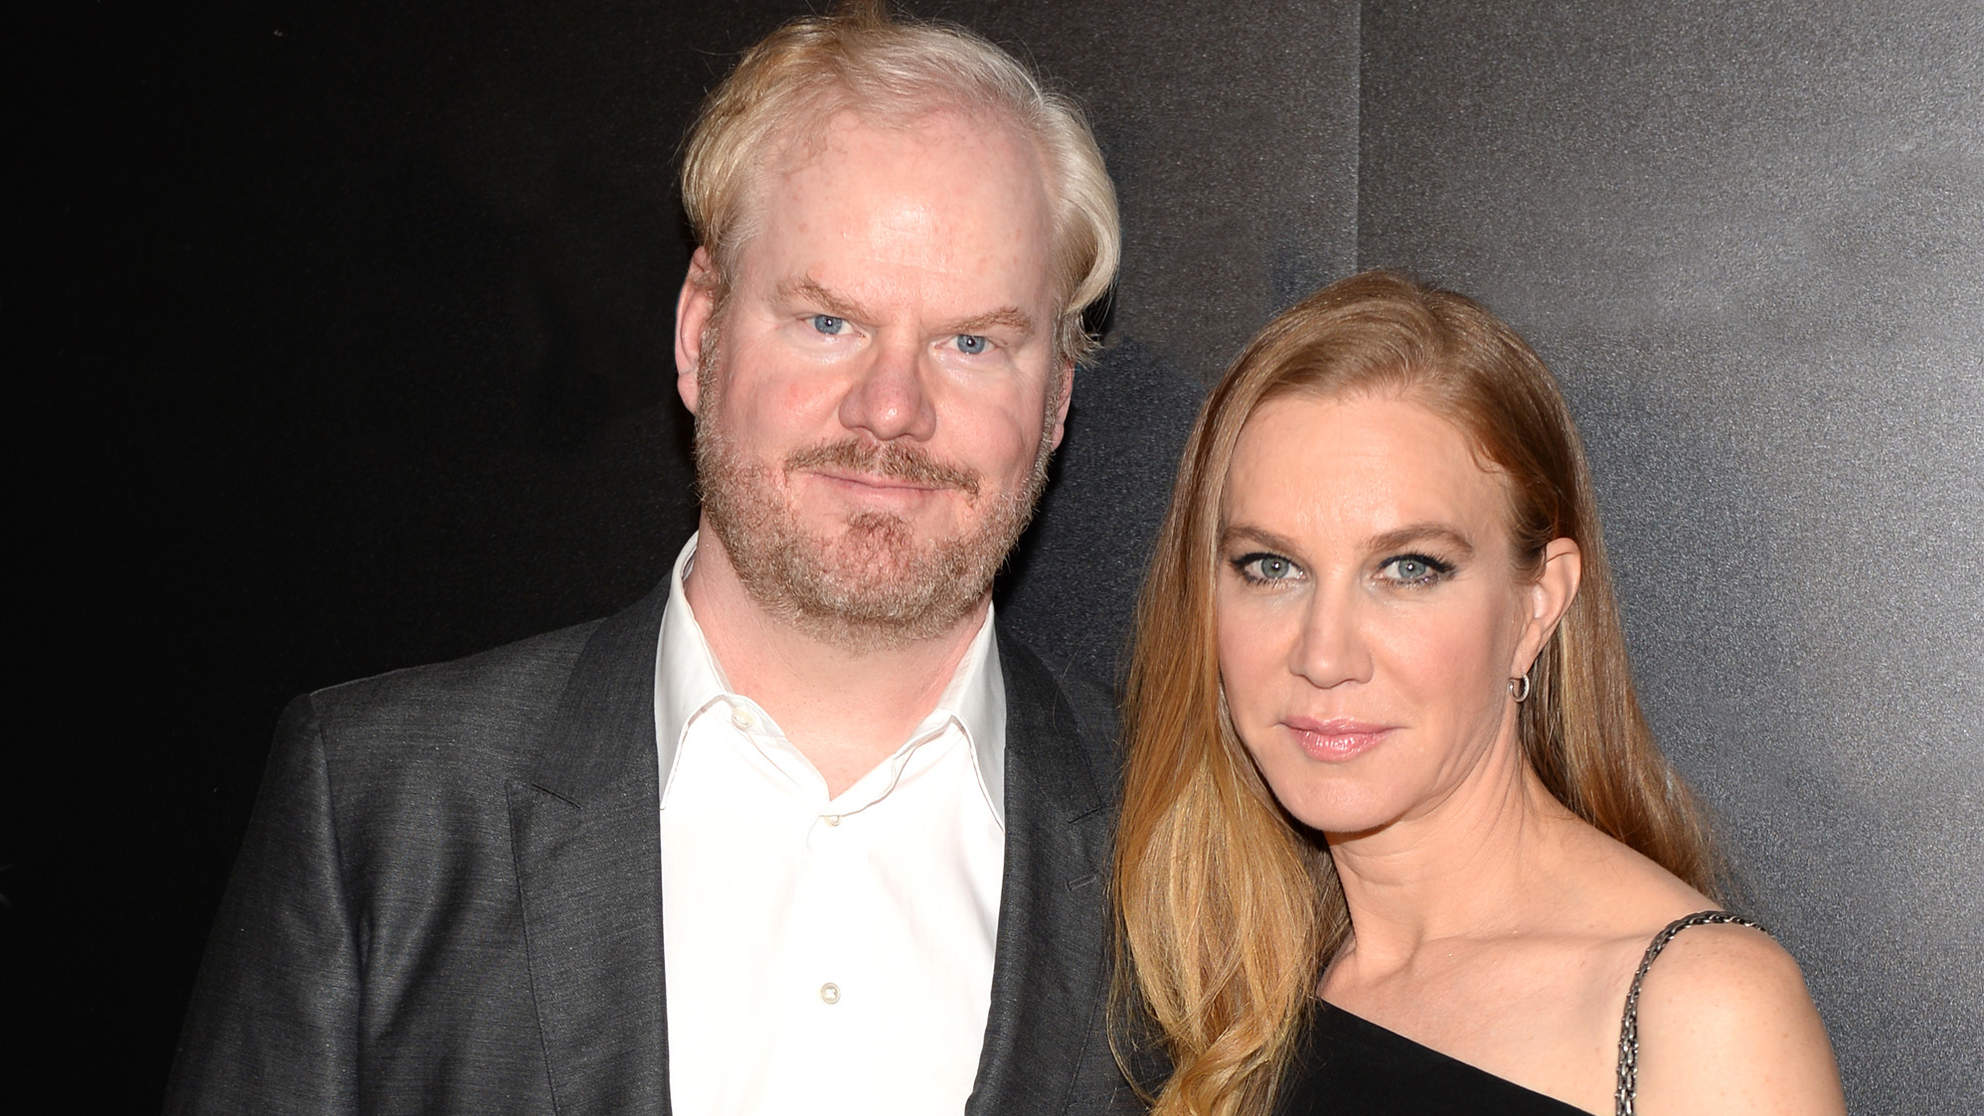 Jim Gaffigan's Wife Jeannie on Discovering She Had a Brain Tumor the Size of an Apple: 'I Was a Ticking Time Bomb'